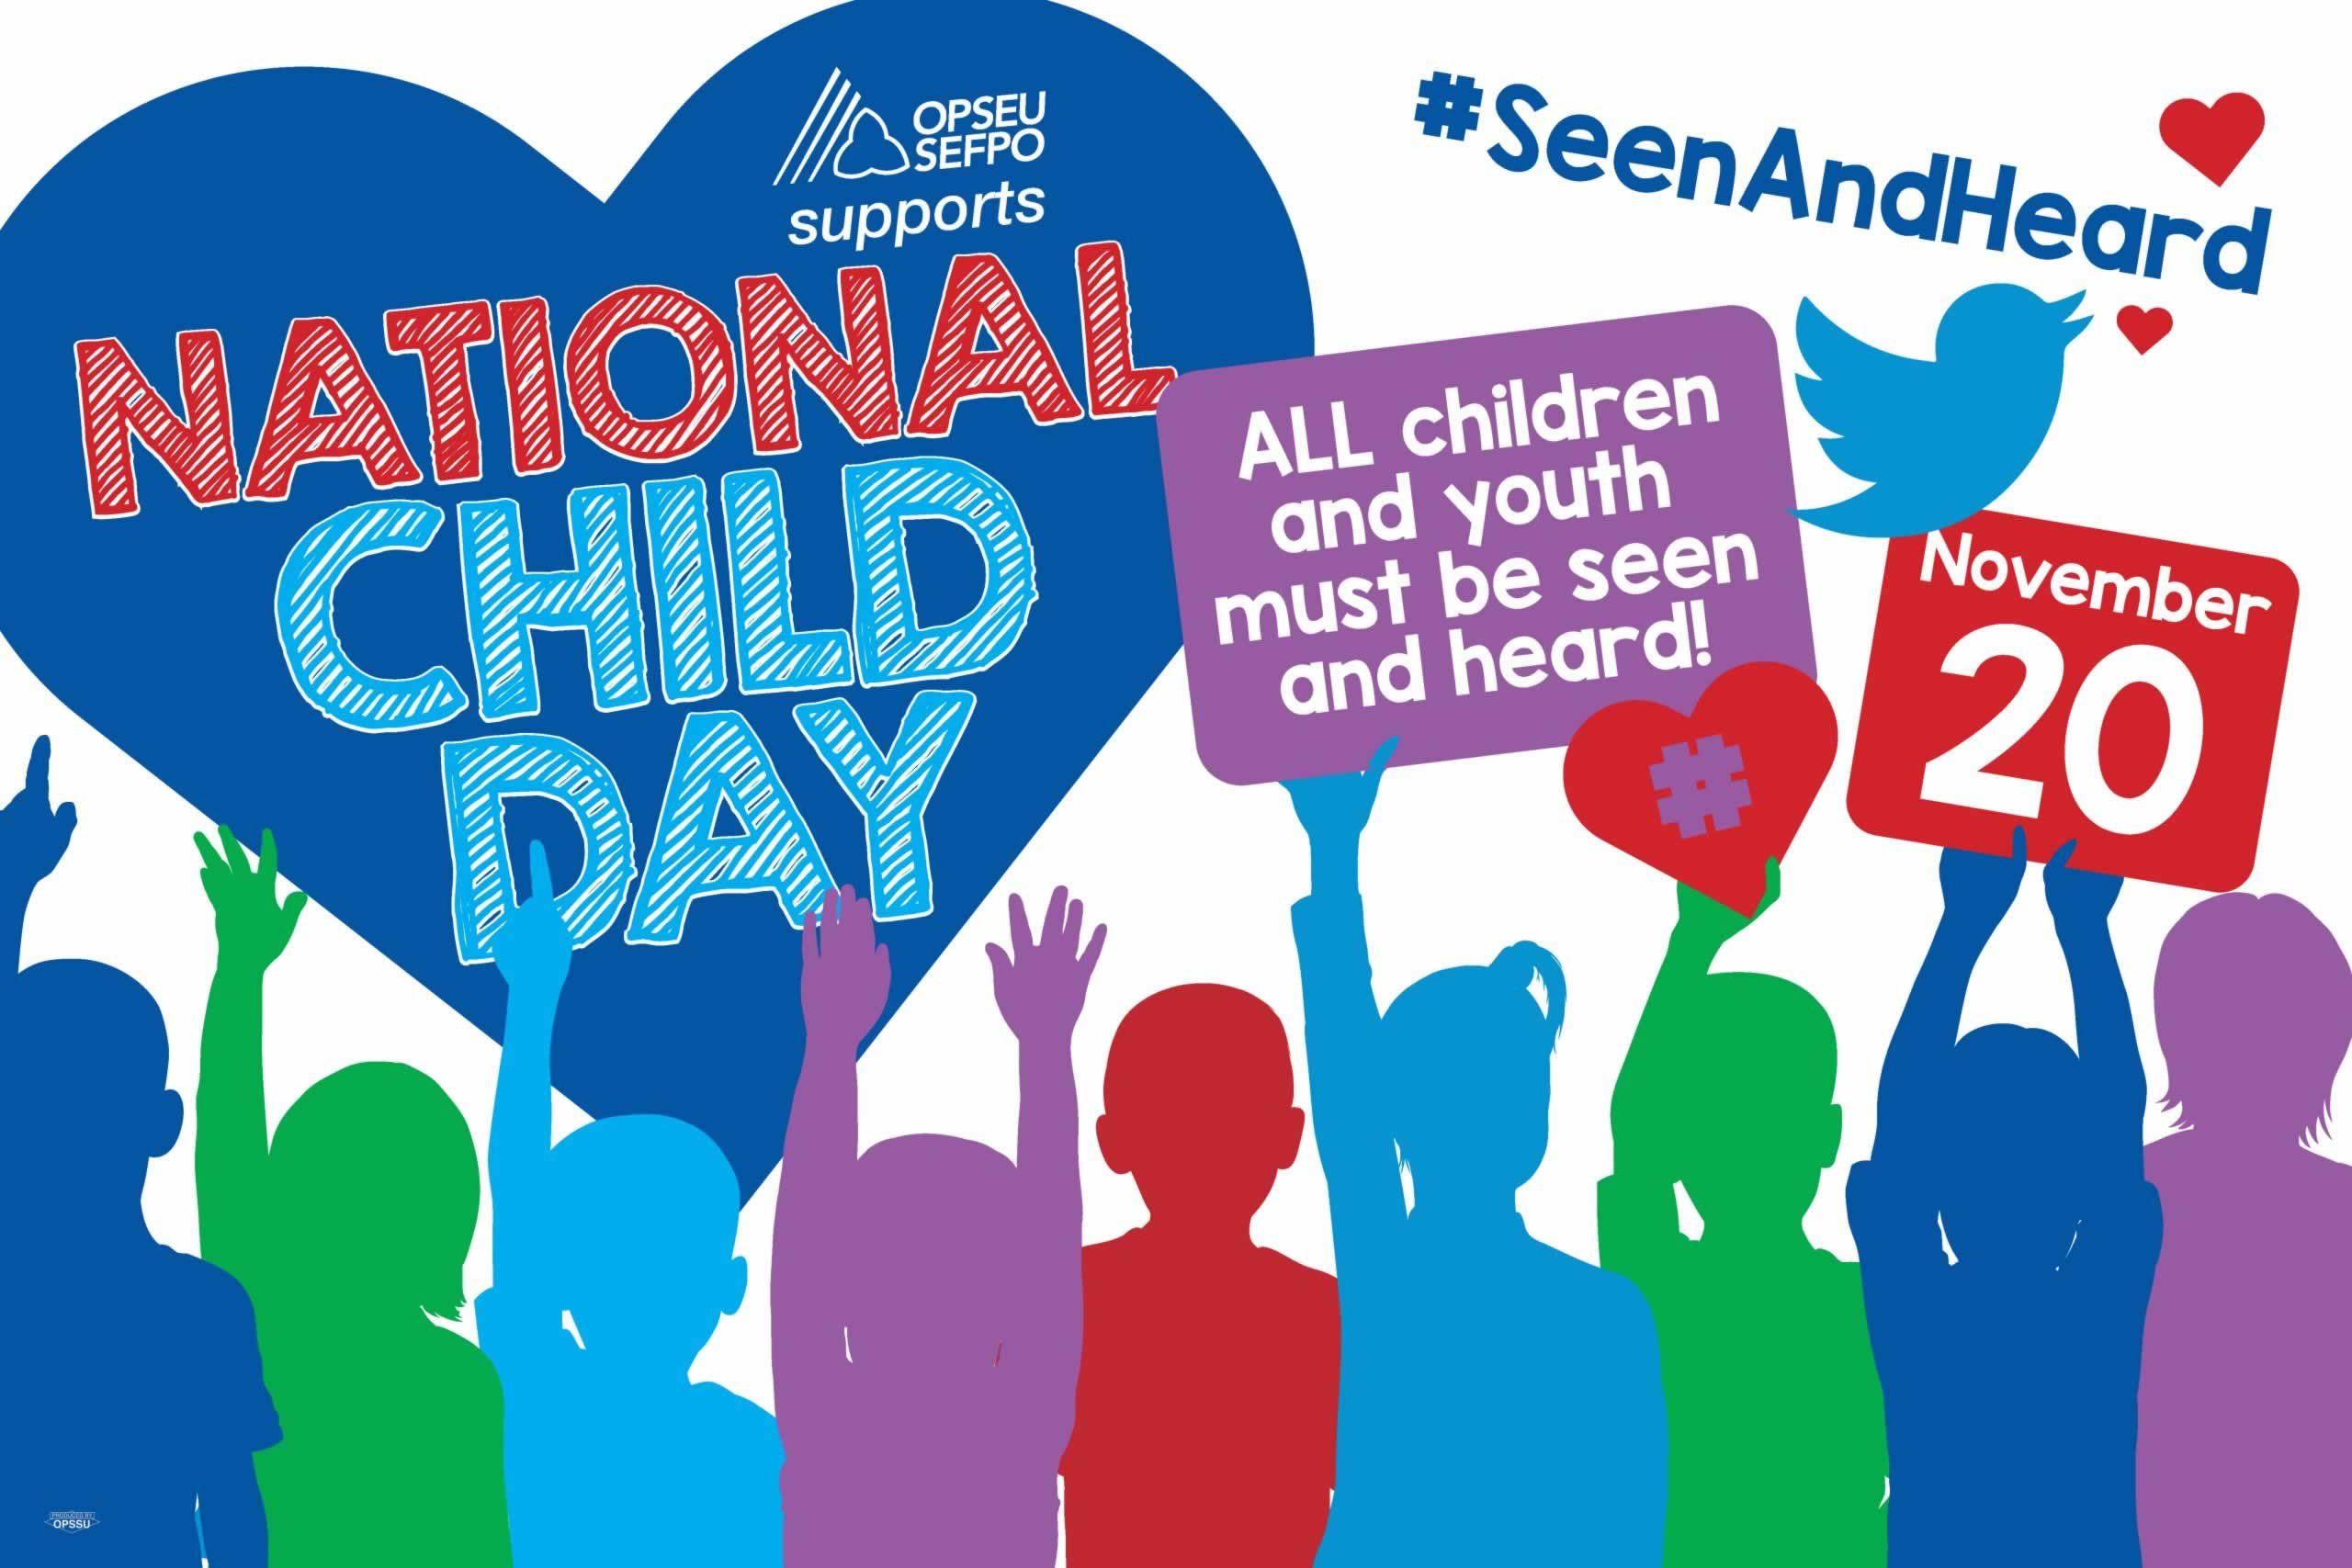 OPSEU/SEFPO supports National Child Day, November 20.